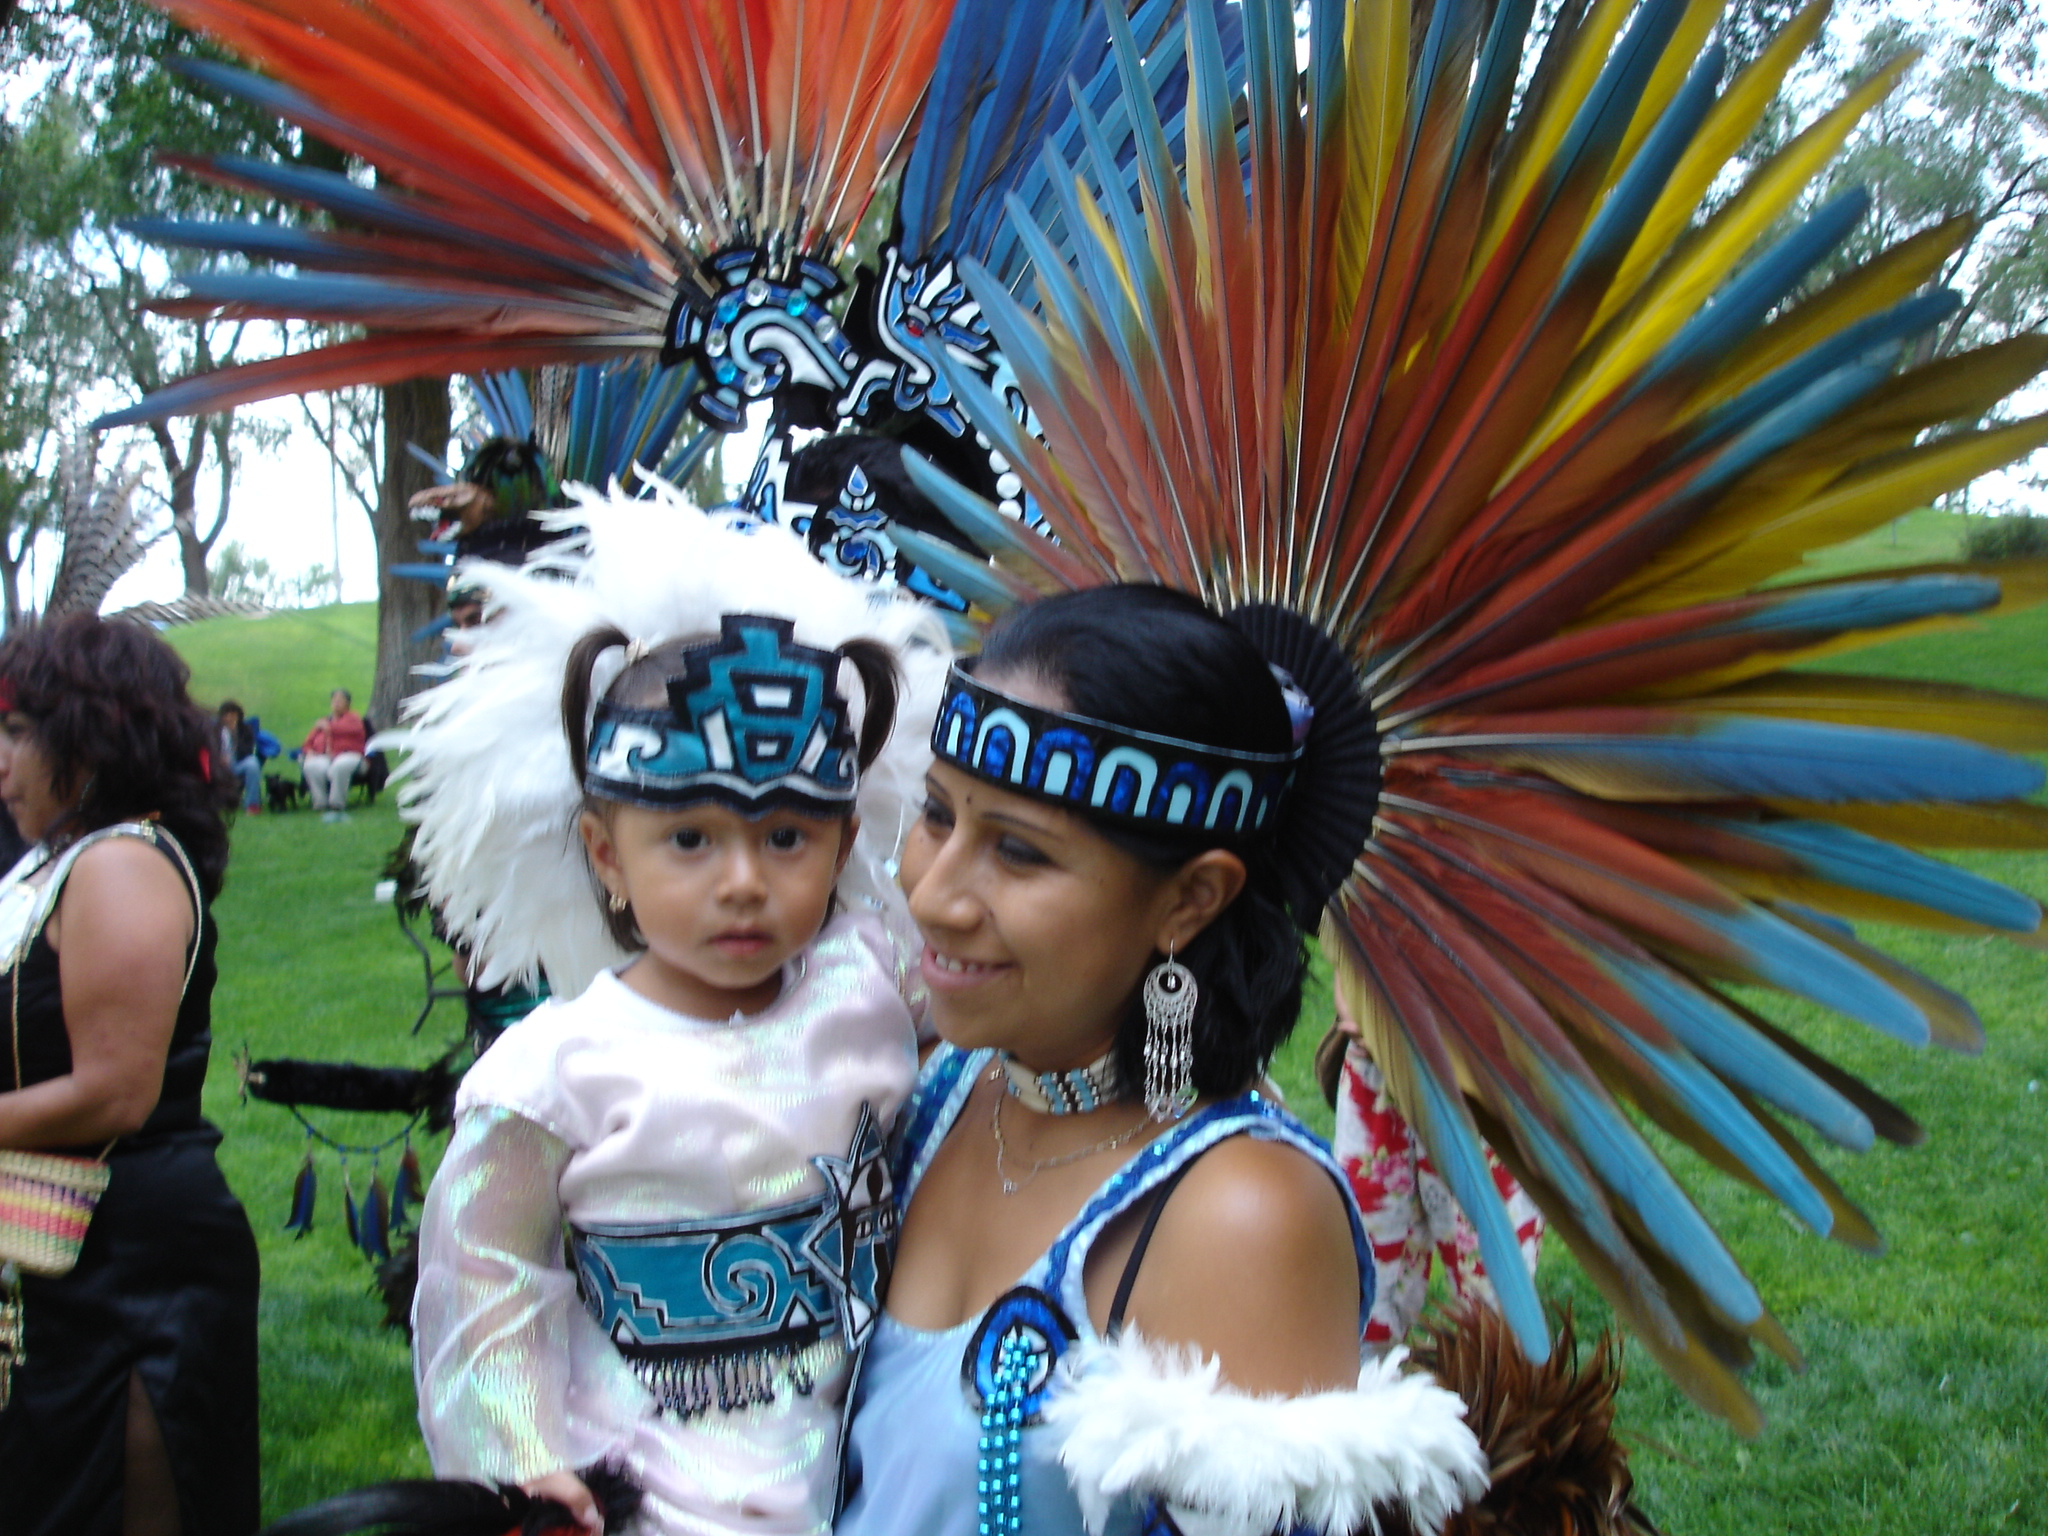 Emanating beauty, a mother and daughter dress in full regalia to welcome Hopi and Aztec runners